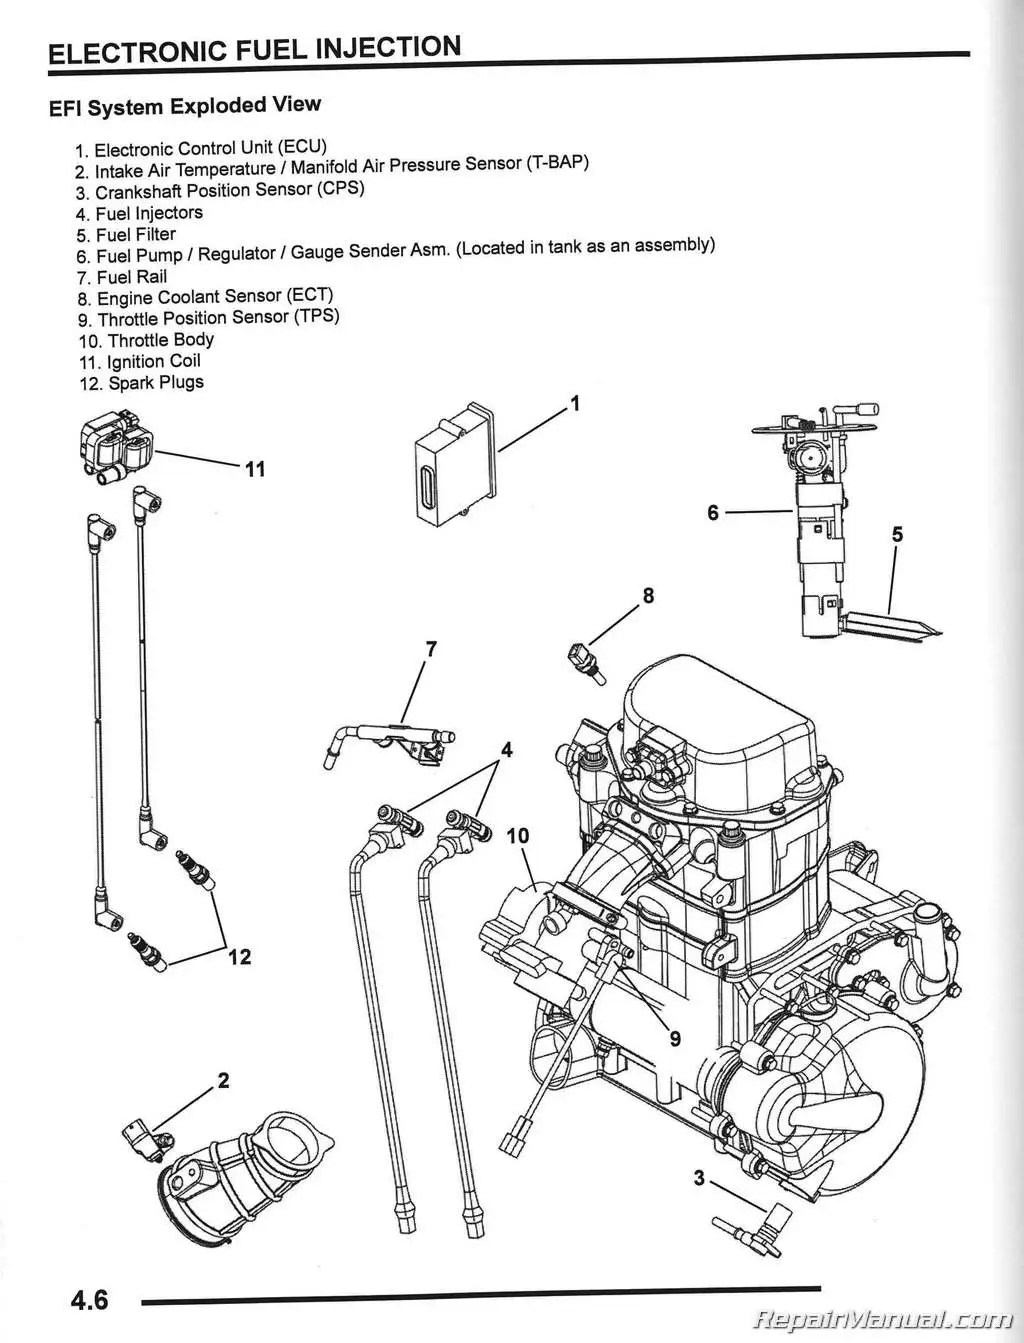 hight resolution of 2008 polaris ranger rzr 800 side by side service manual rh repairmanual com polaris rzr 800 ignition wiring diagram polaris rzr 900 wiring diagram